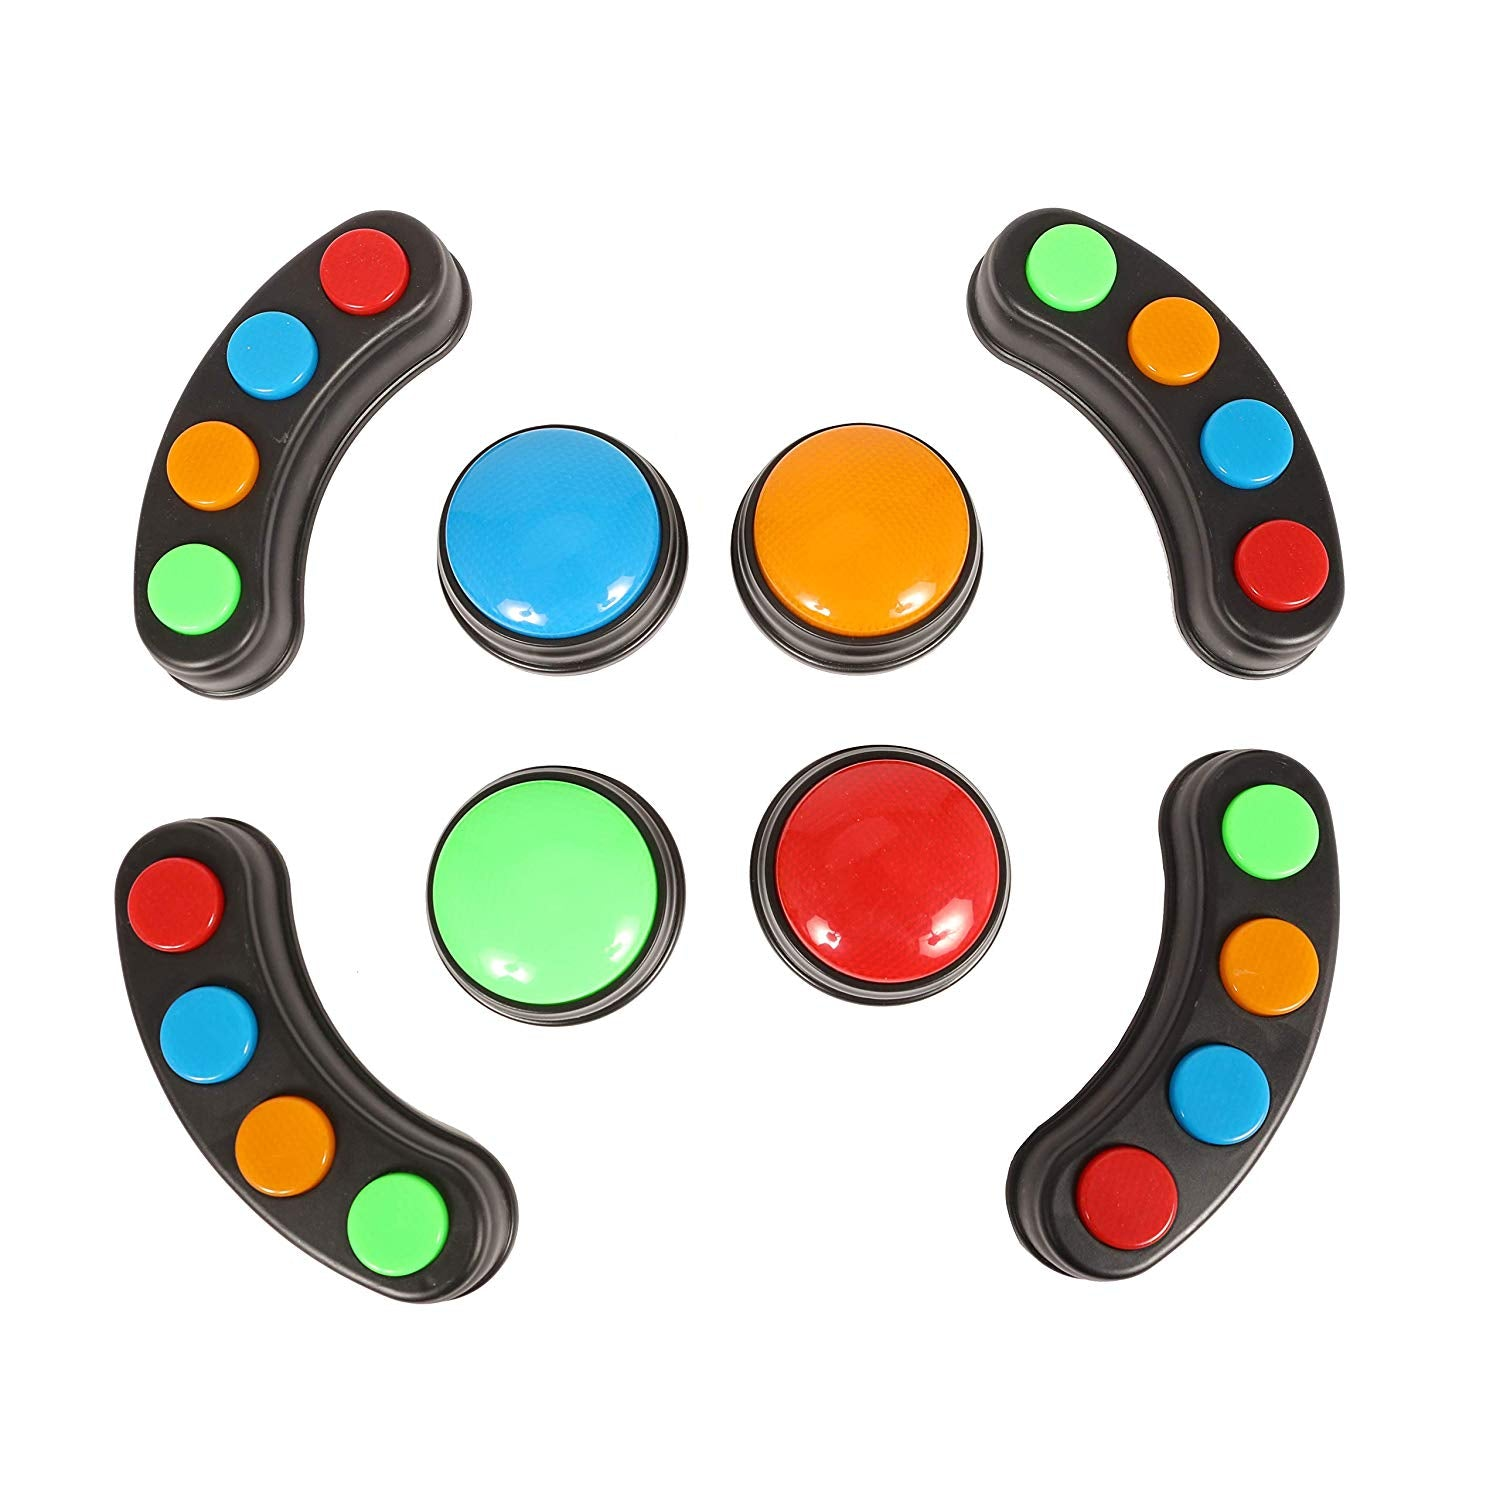 IQ Toys 8 Piece Signalight Set, Includes 4 Light Bars and 4 Individual Buzzers. Great for Games, Parties and Classrooms